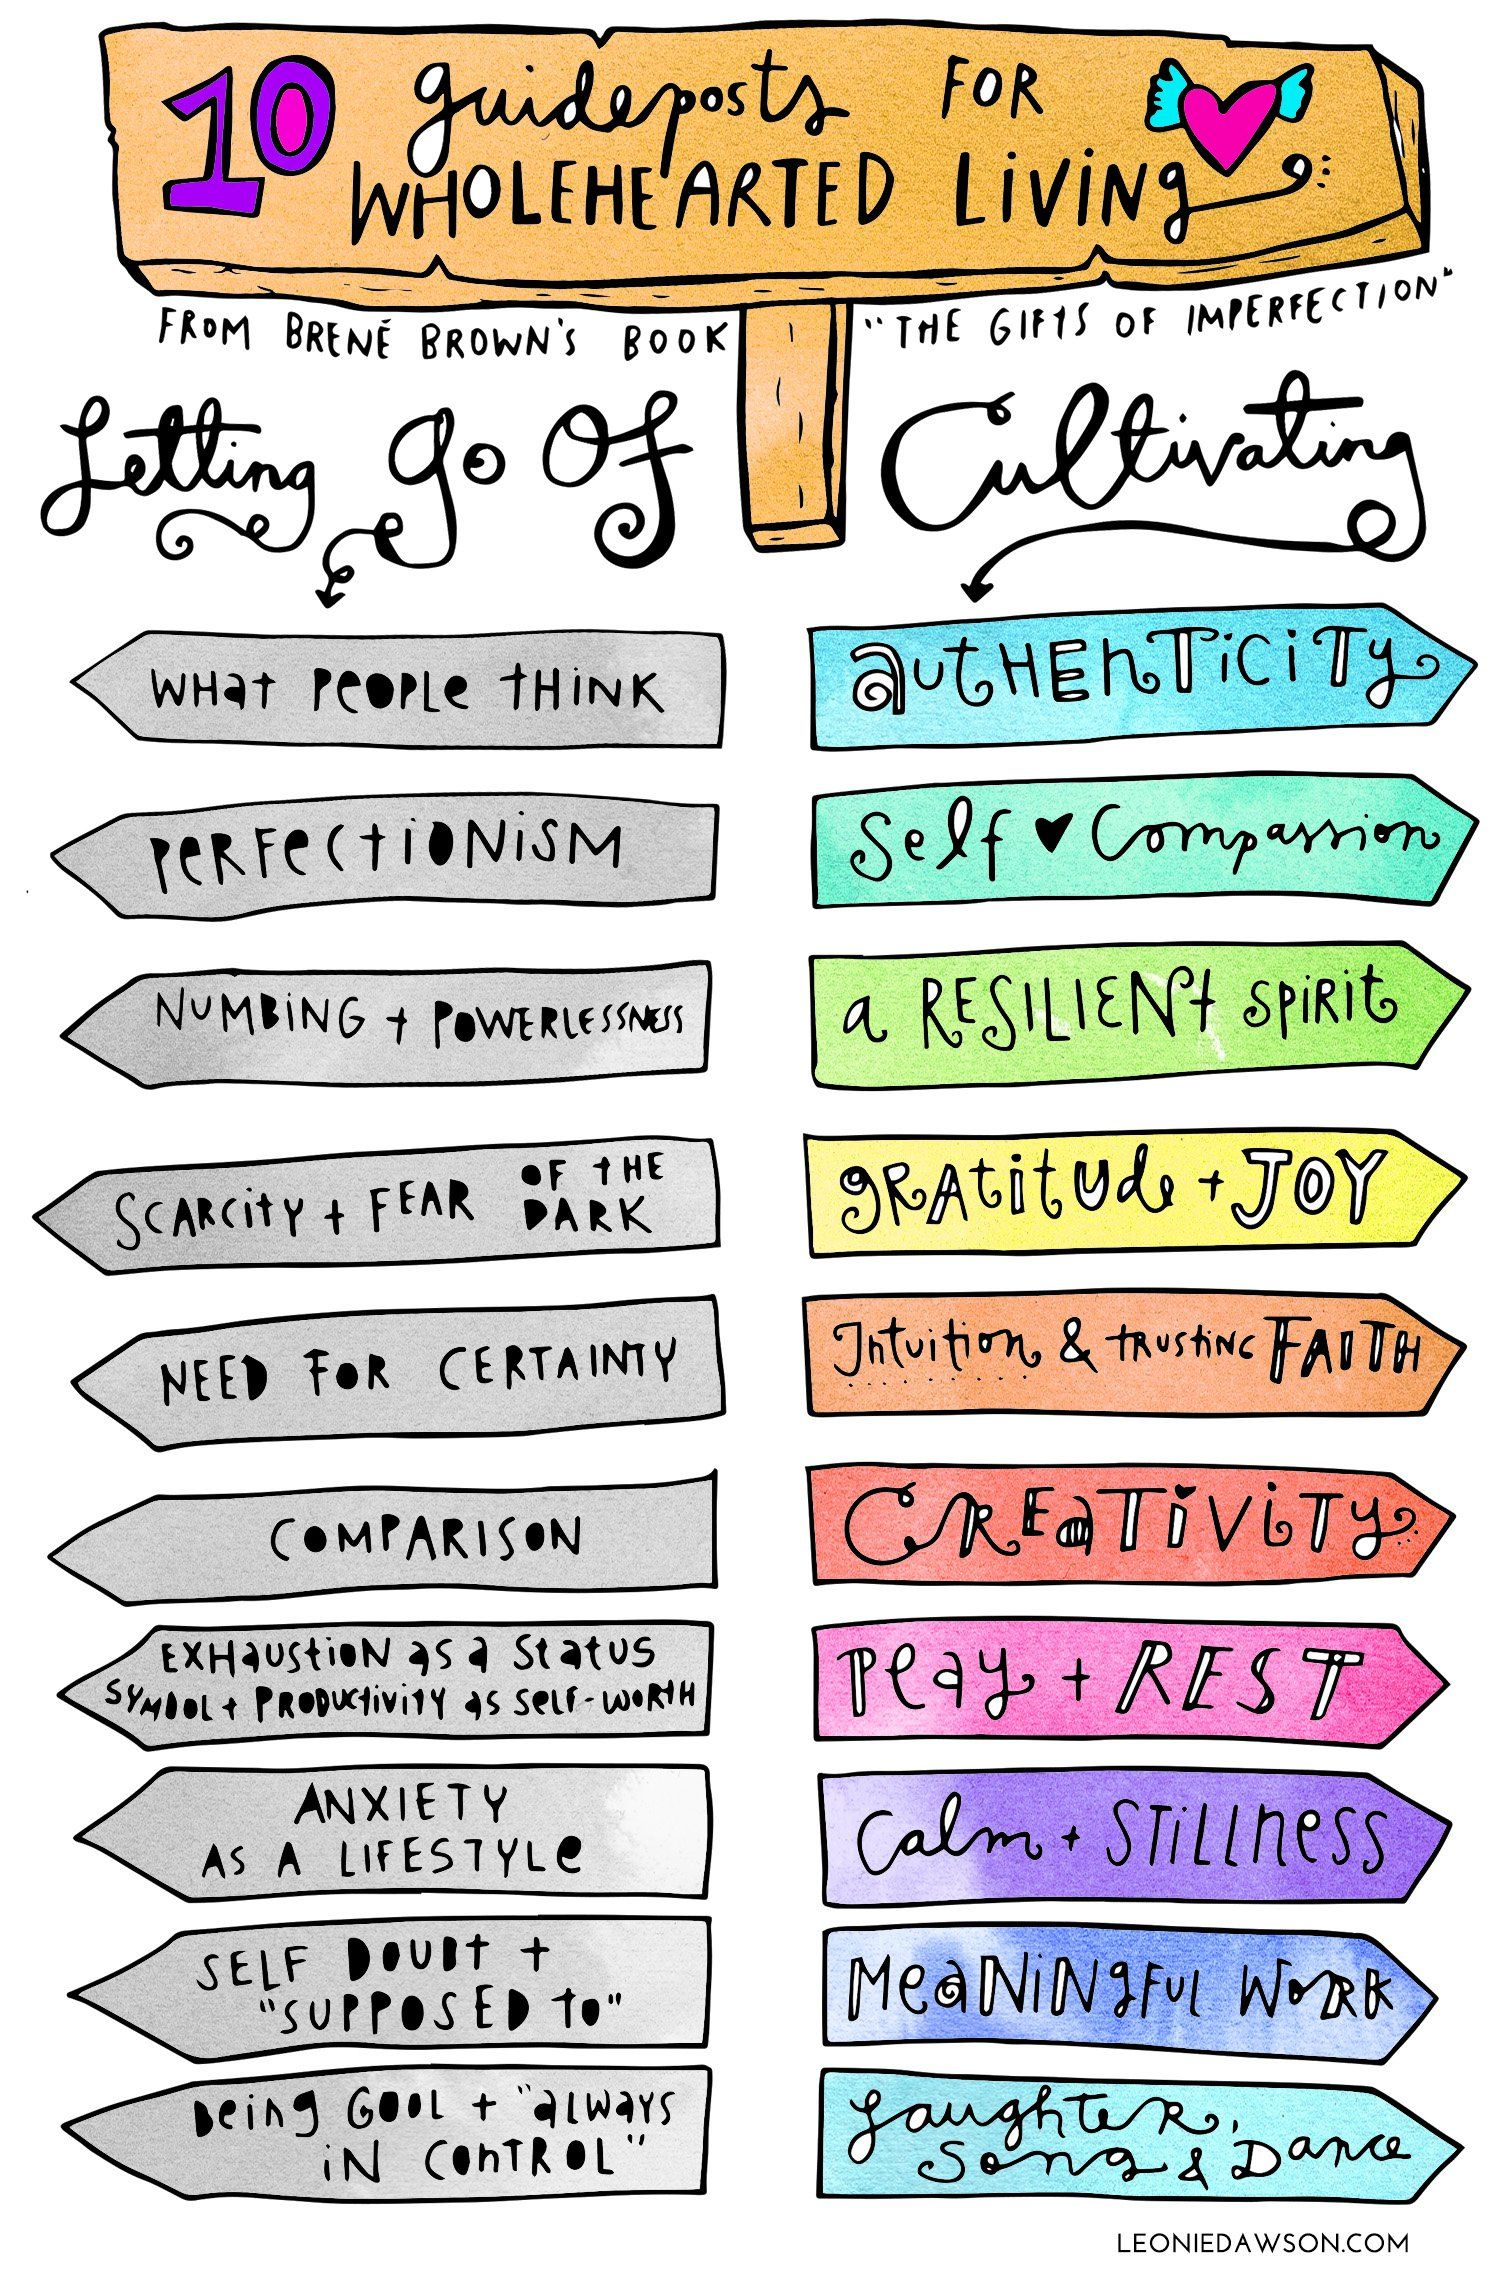 10 Guideposts For Whole Hearted Living Free Printable